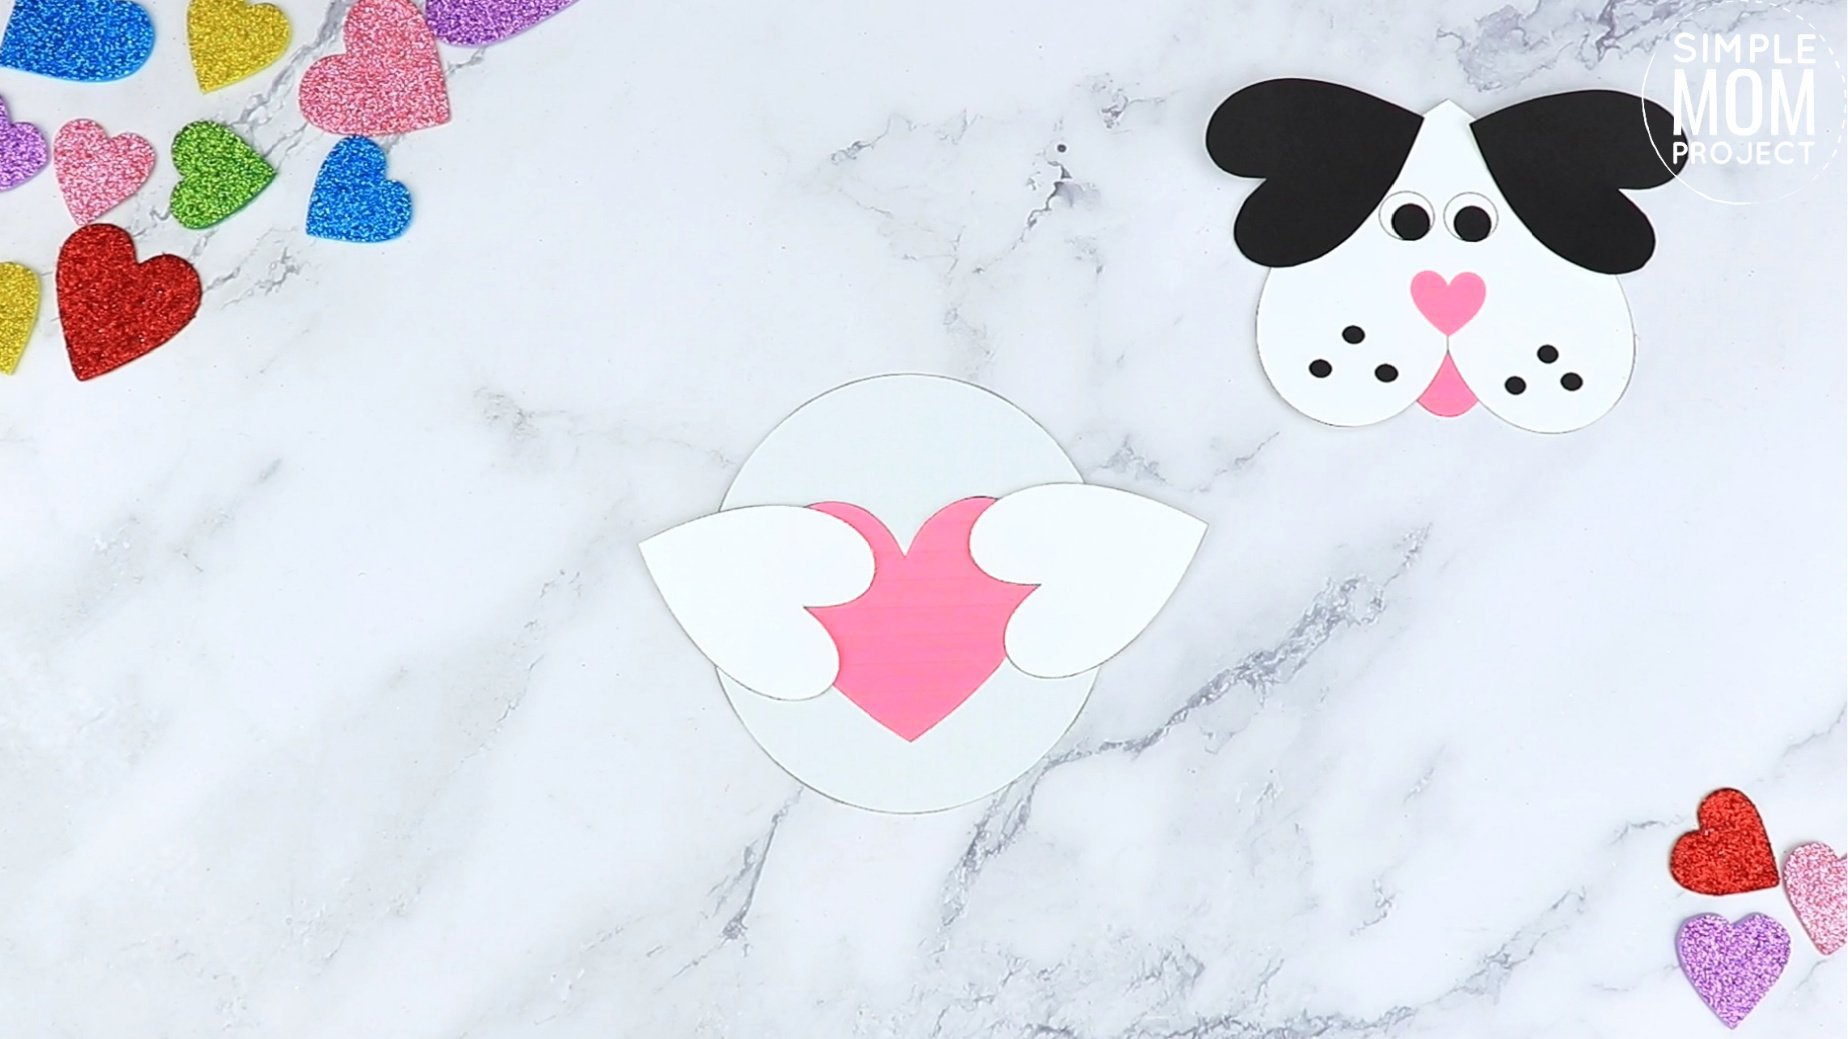 Easy Printable Diy Heart Puppy Dog Craft for Preschool, toddler, kindergarten